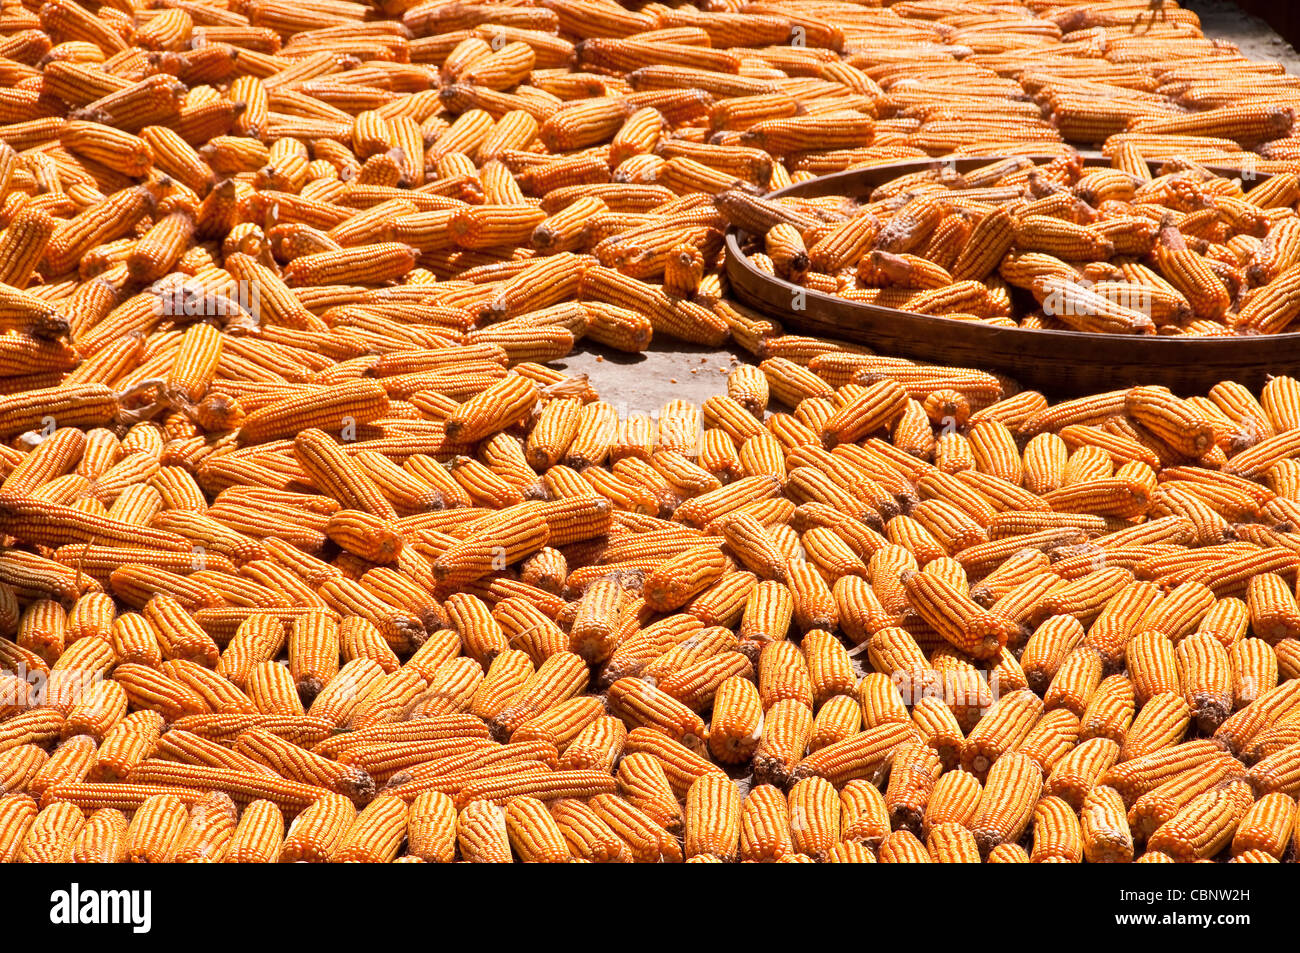 Corn drying in the sun - Village of Dazhai, Guangxi province (China) - Stock Image